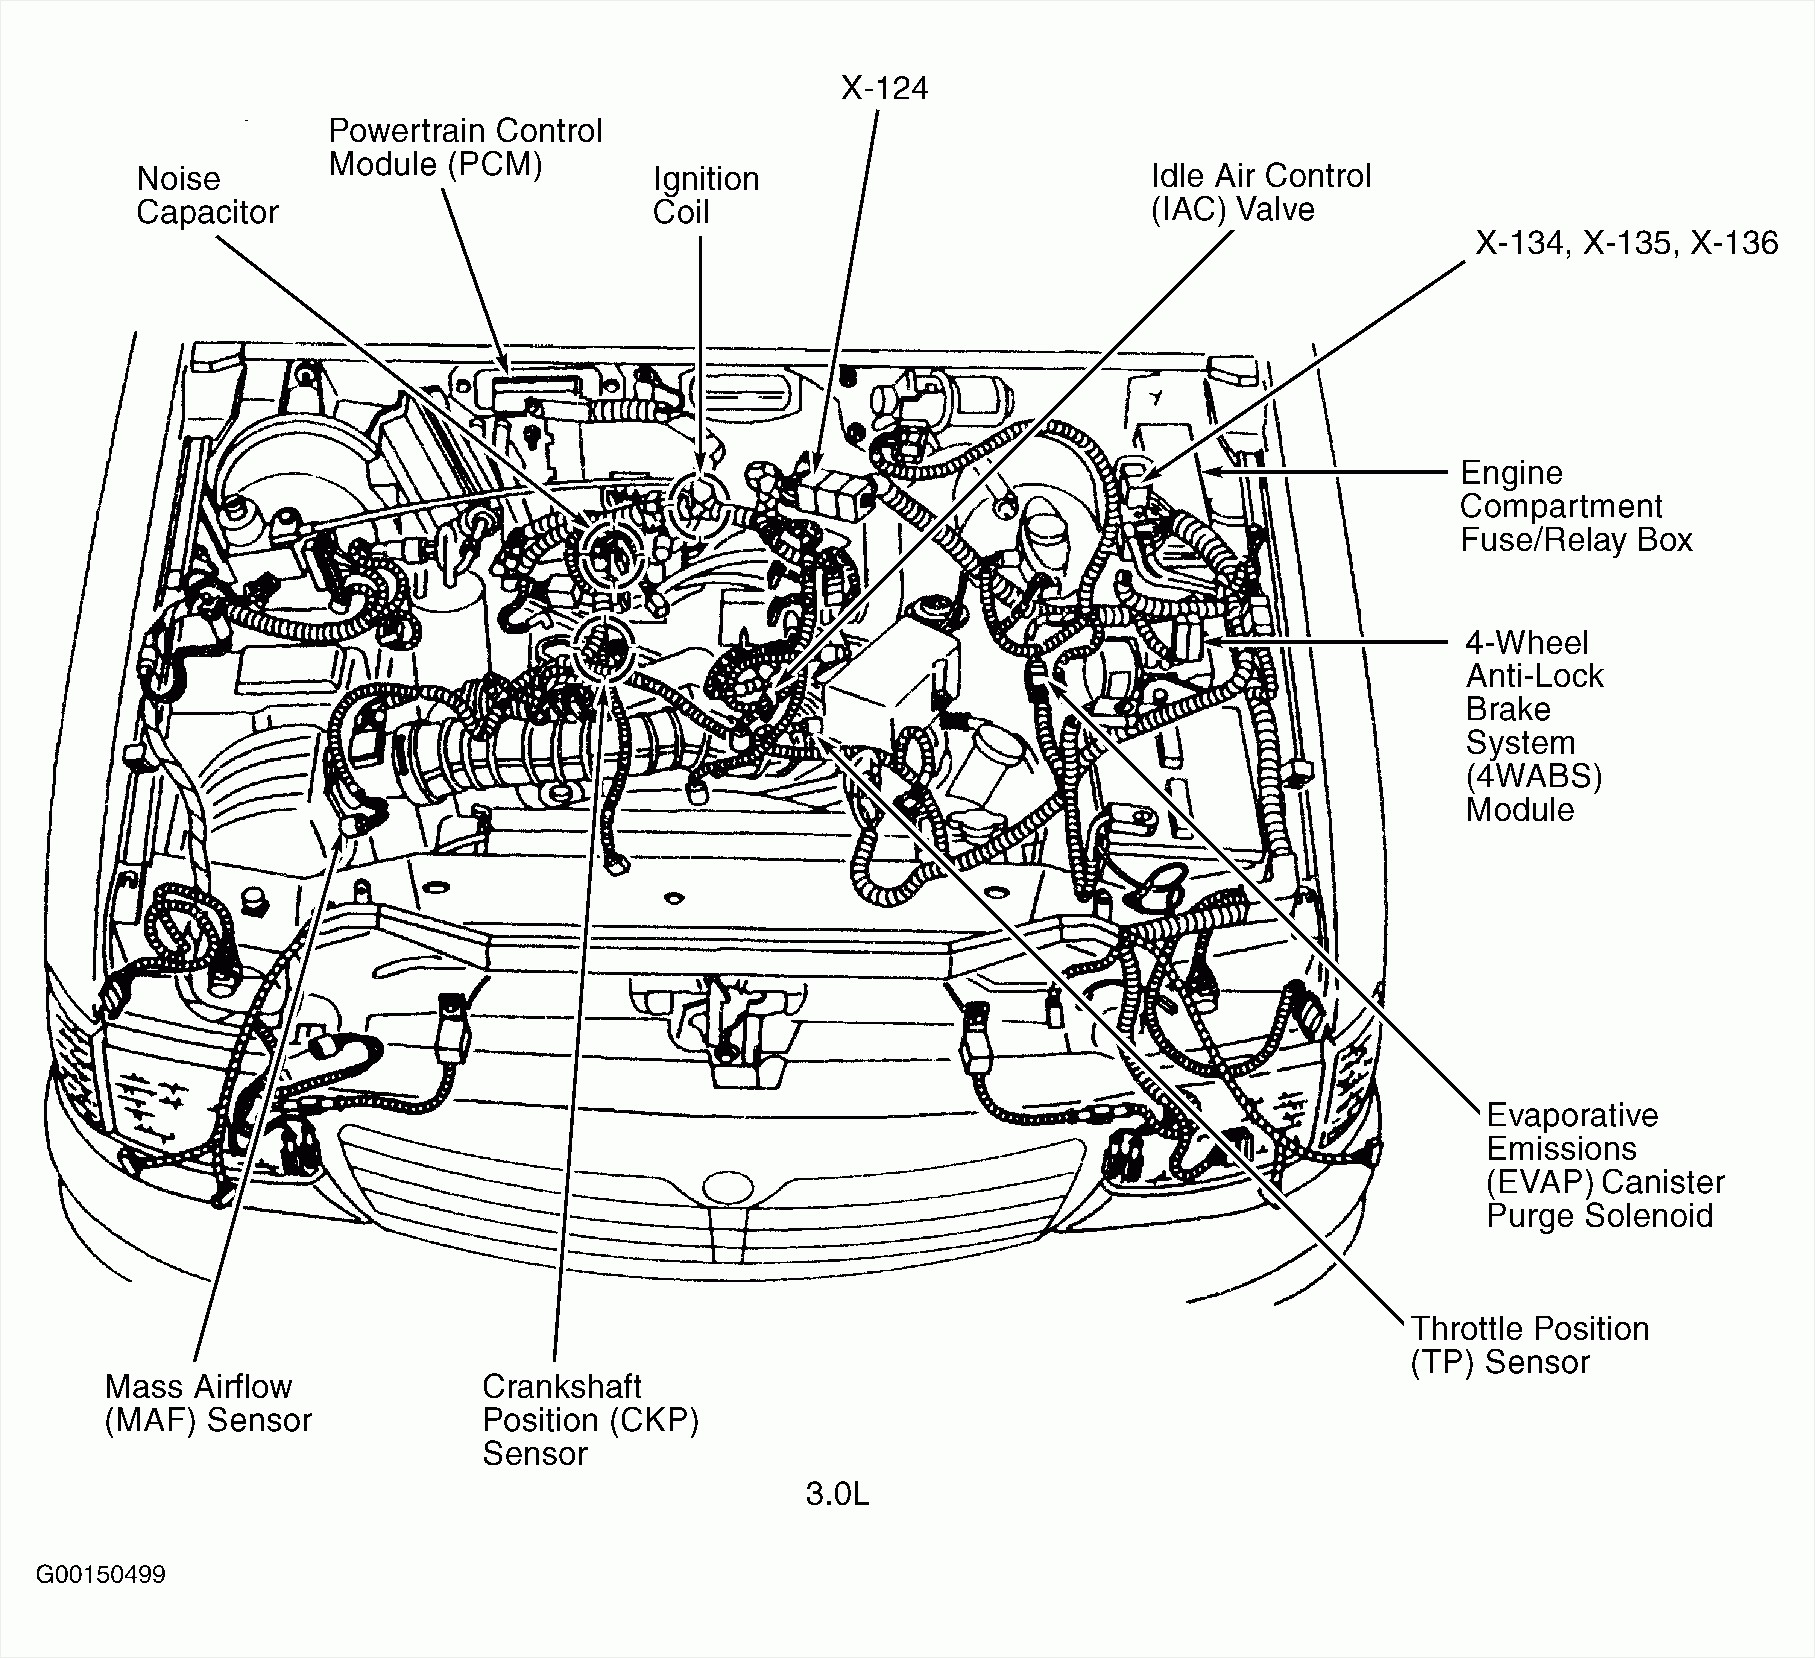 Toyota 3 0 V6 Engine Wiring Diagram on neutral safety switch wiring diagram for buick